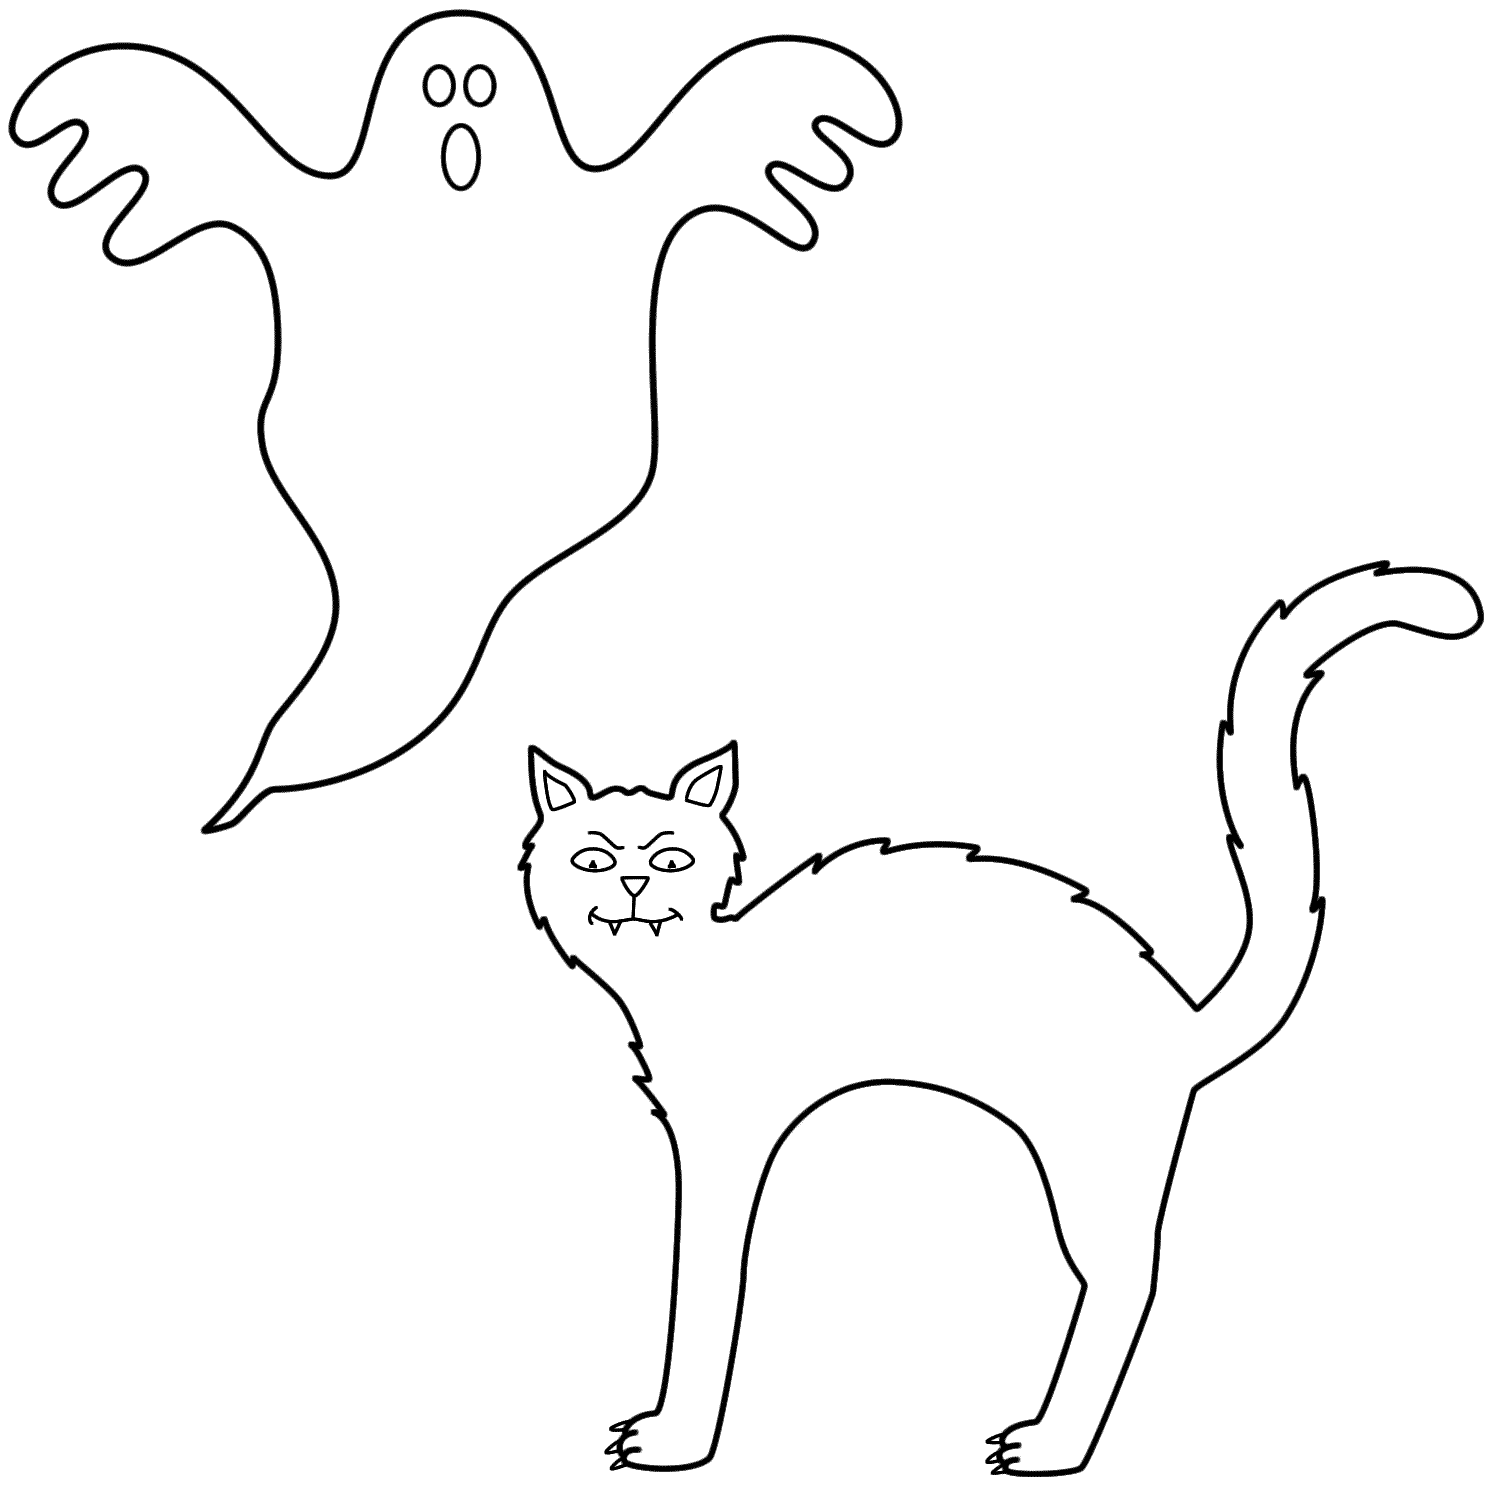 Ghost and Cat Halloween Coloring Pages | sewing | Pinterest ...